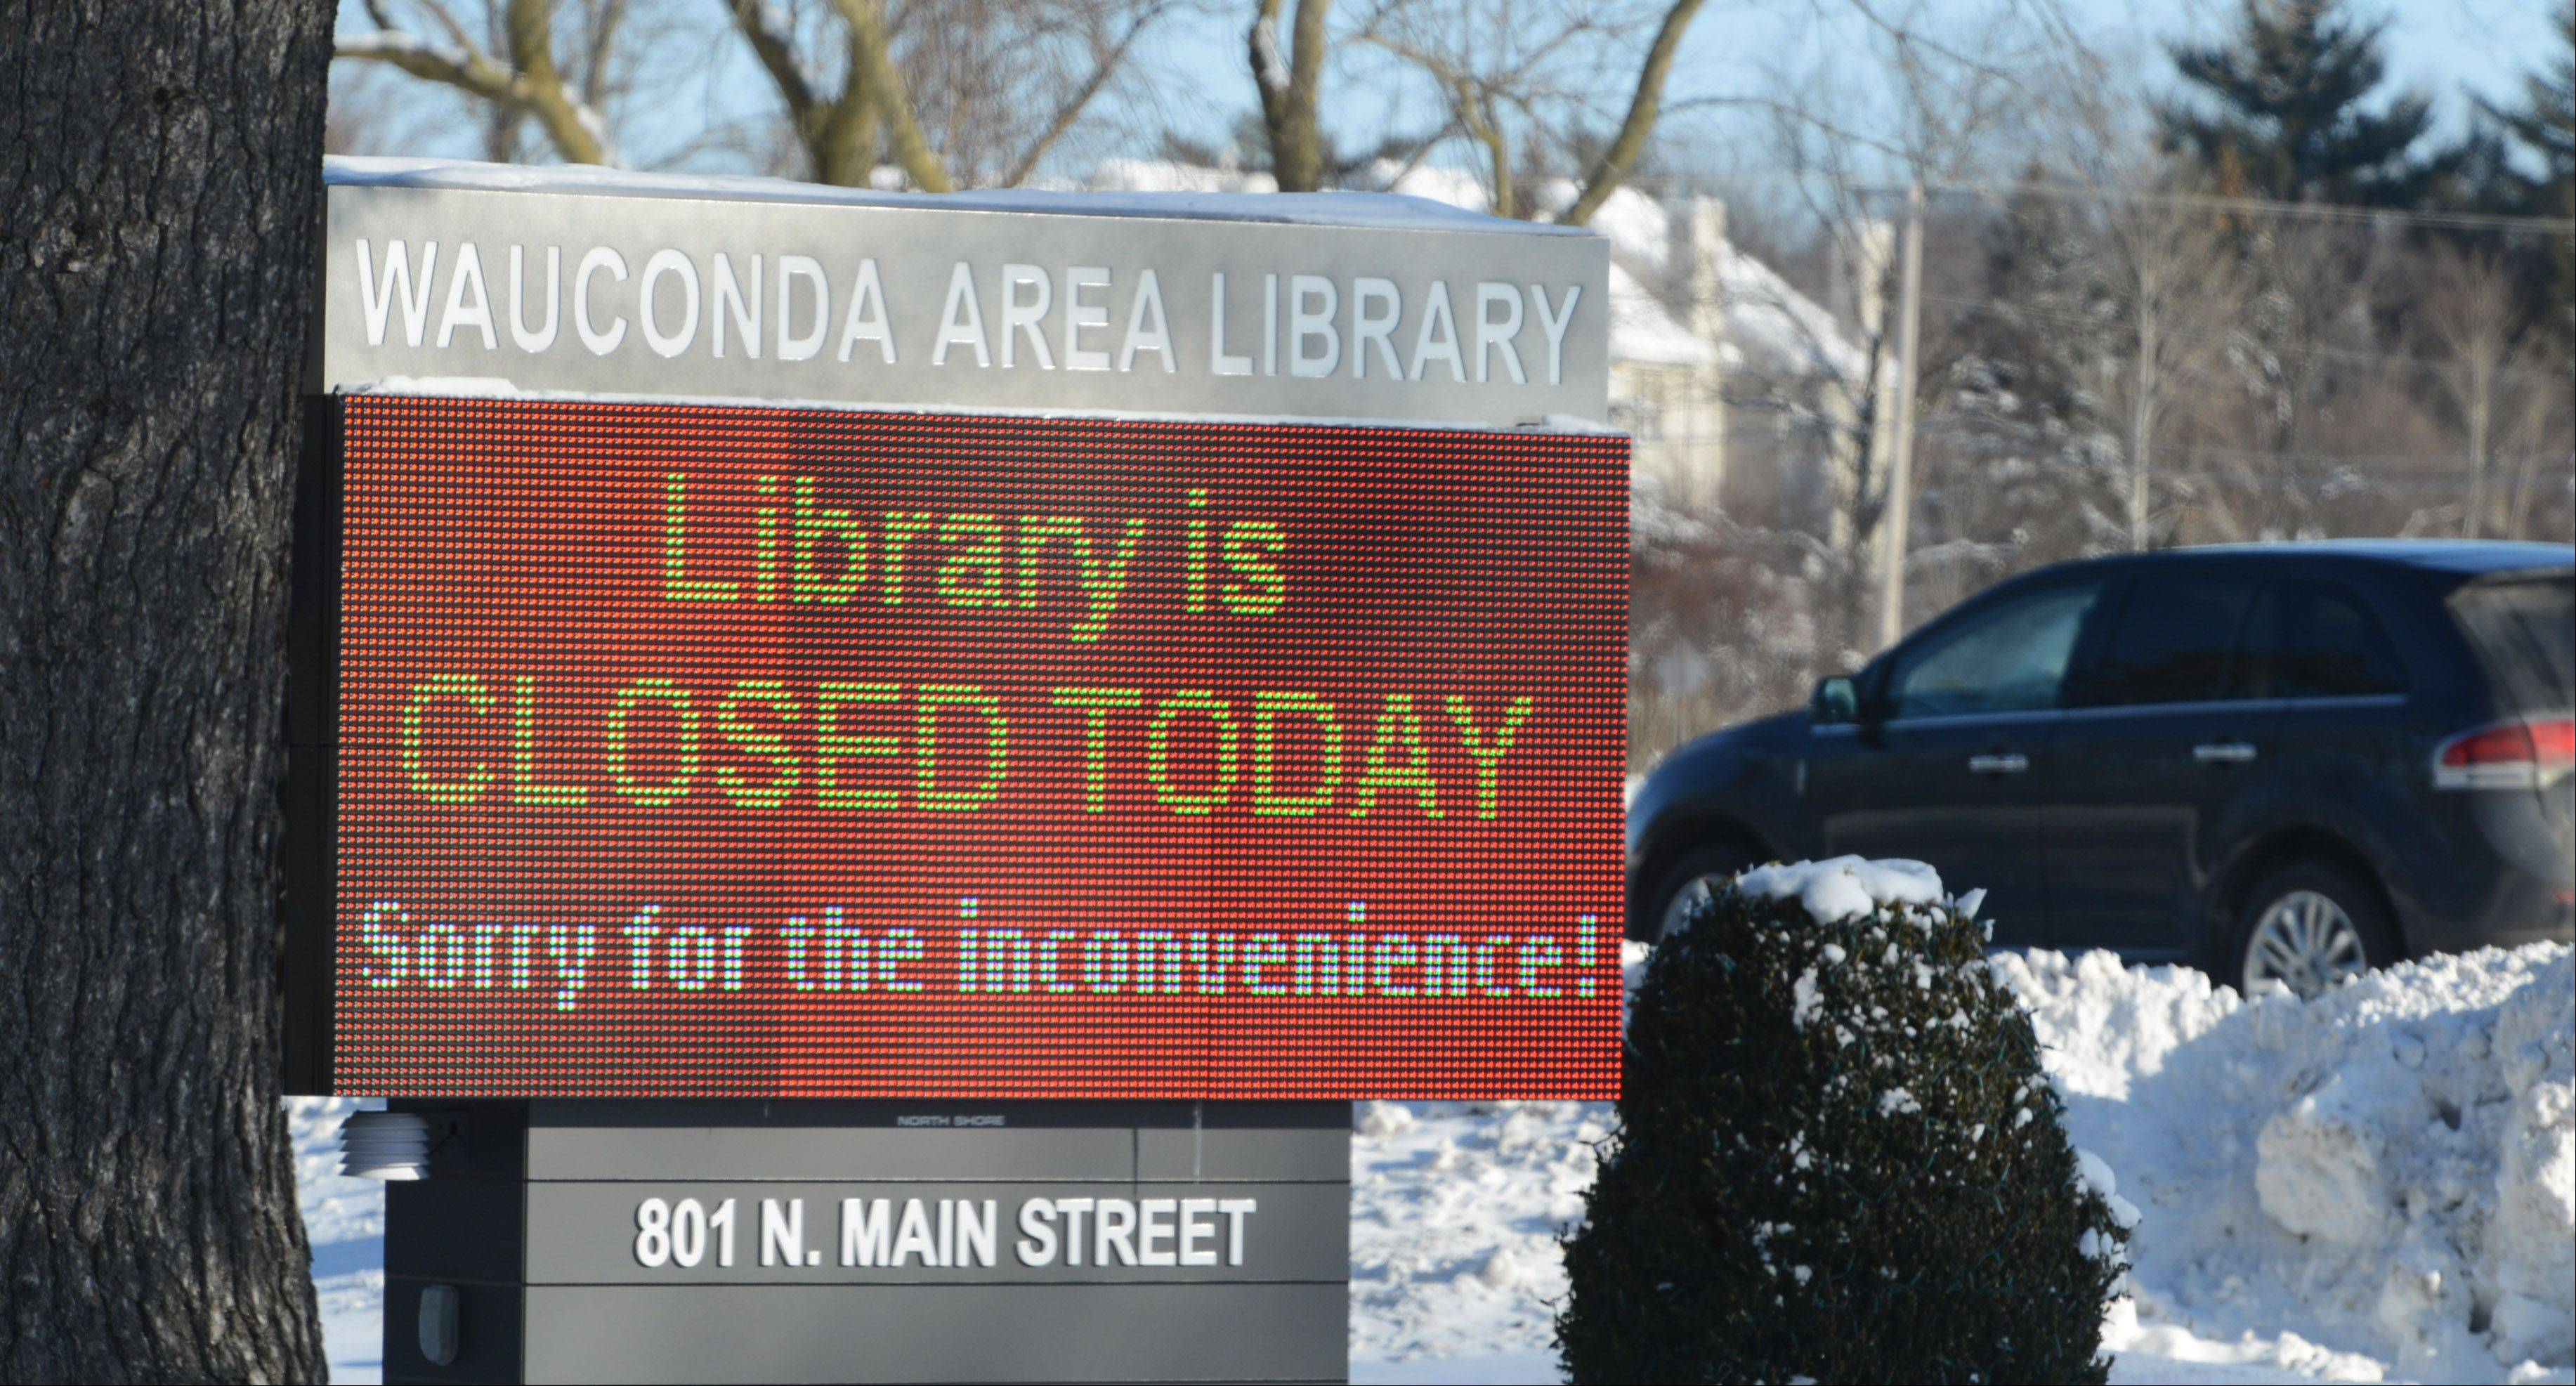 Many suburban libraries closed Monday because of the cold. The Wauconda Area Library notified its patrons with their electronic sign along Main Street.